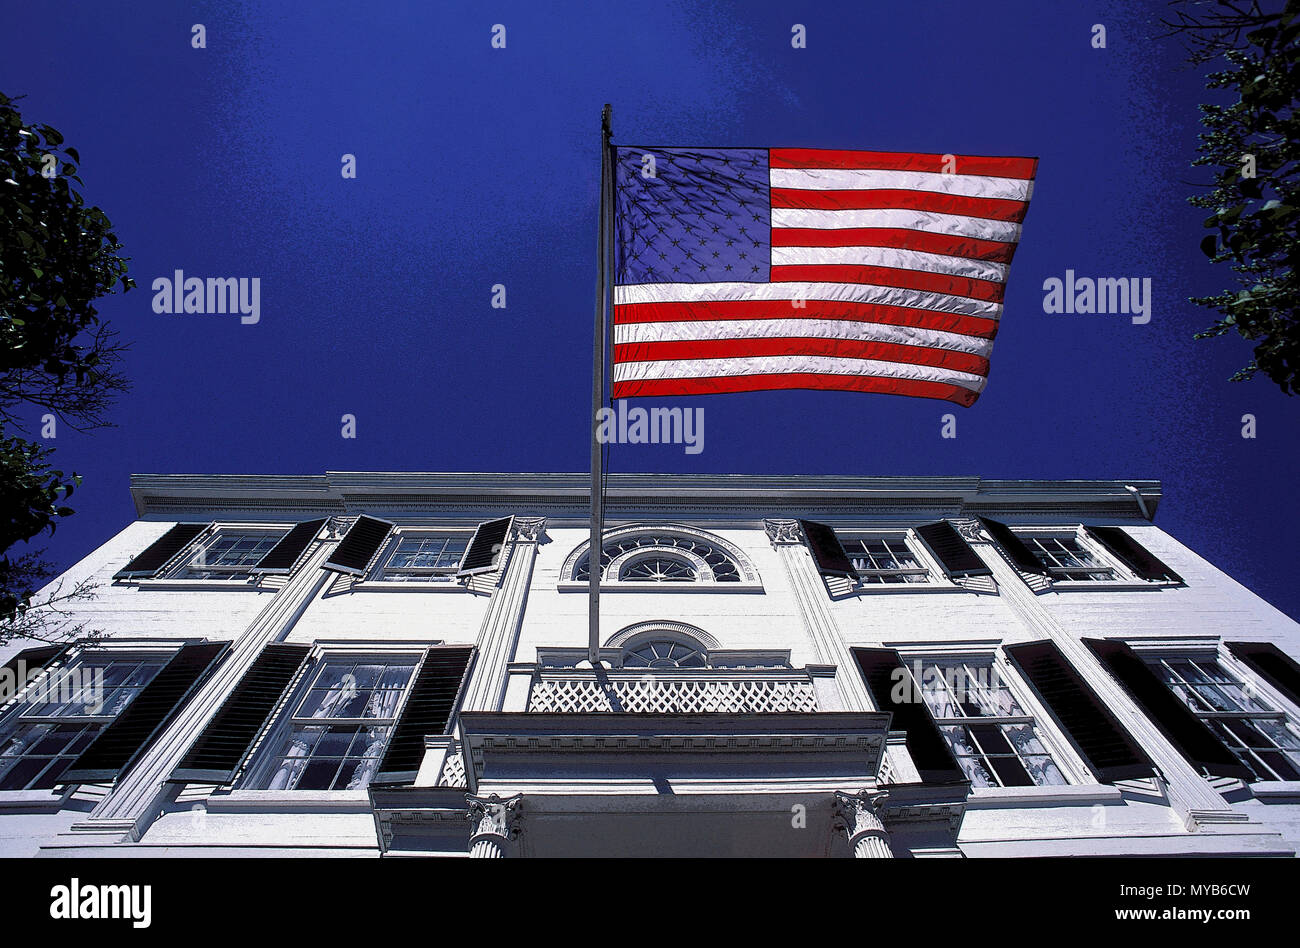 Nickels-Sortwell House with American flag, view looking up (rendered slightly in PS), Wiscasset, Maine, USA Stock Photo